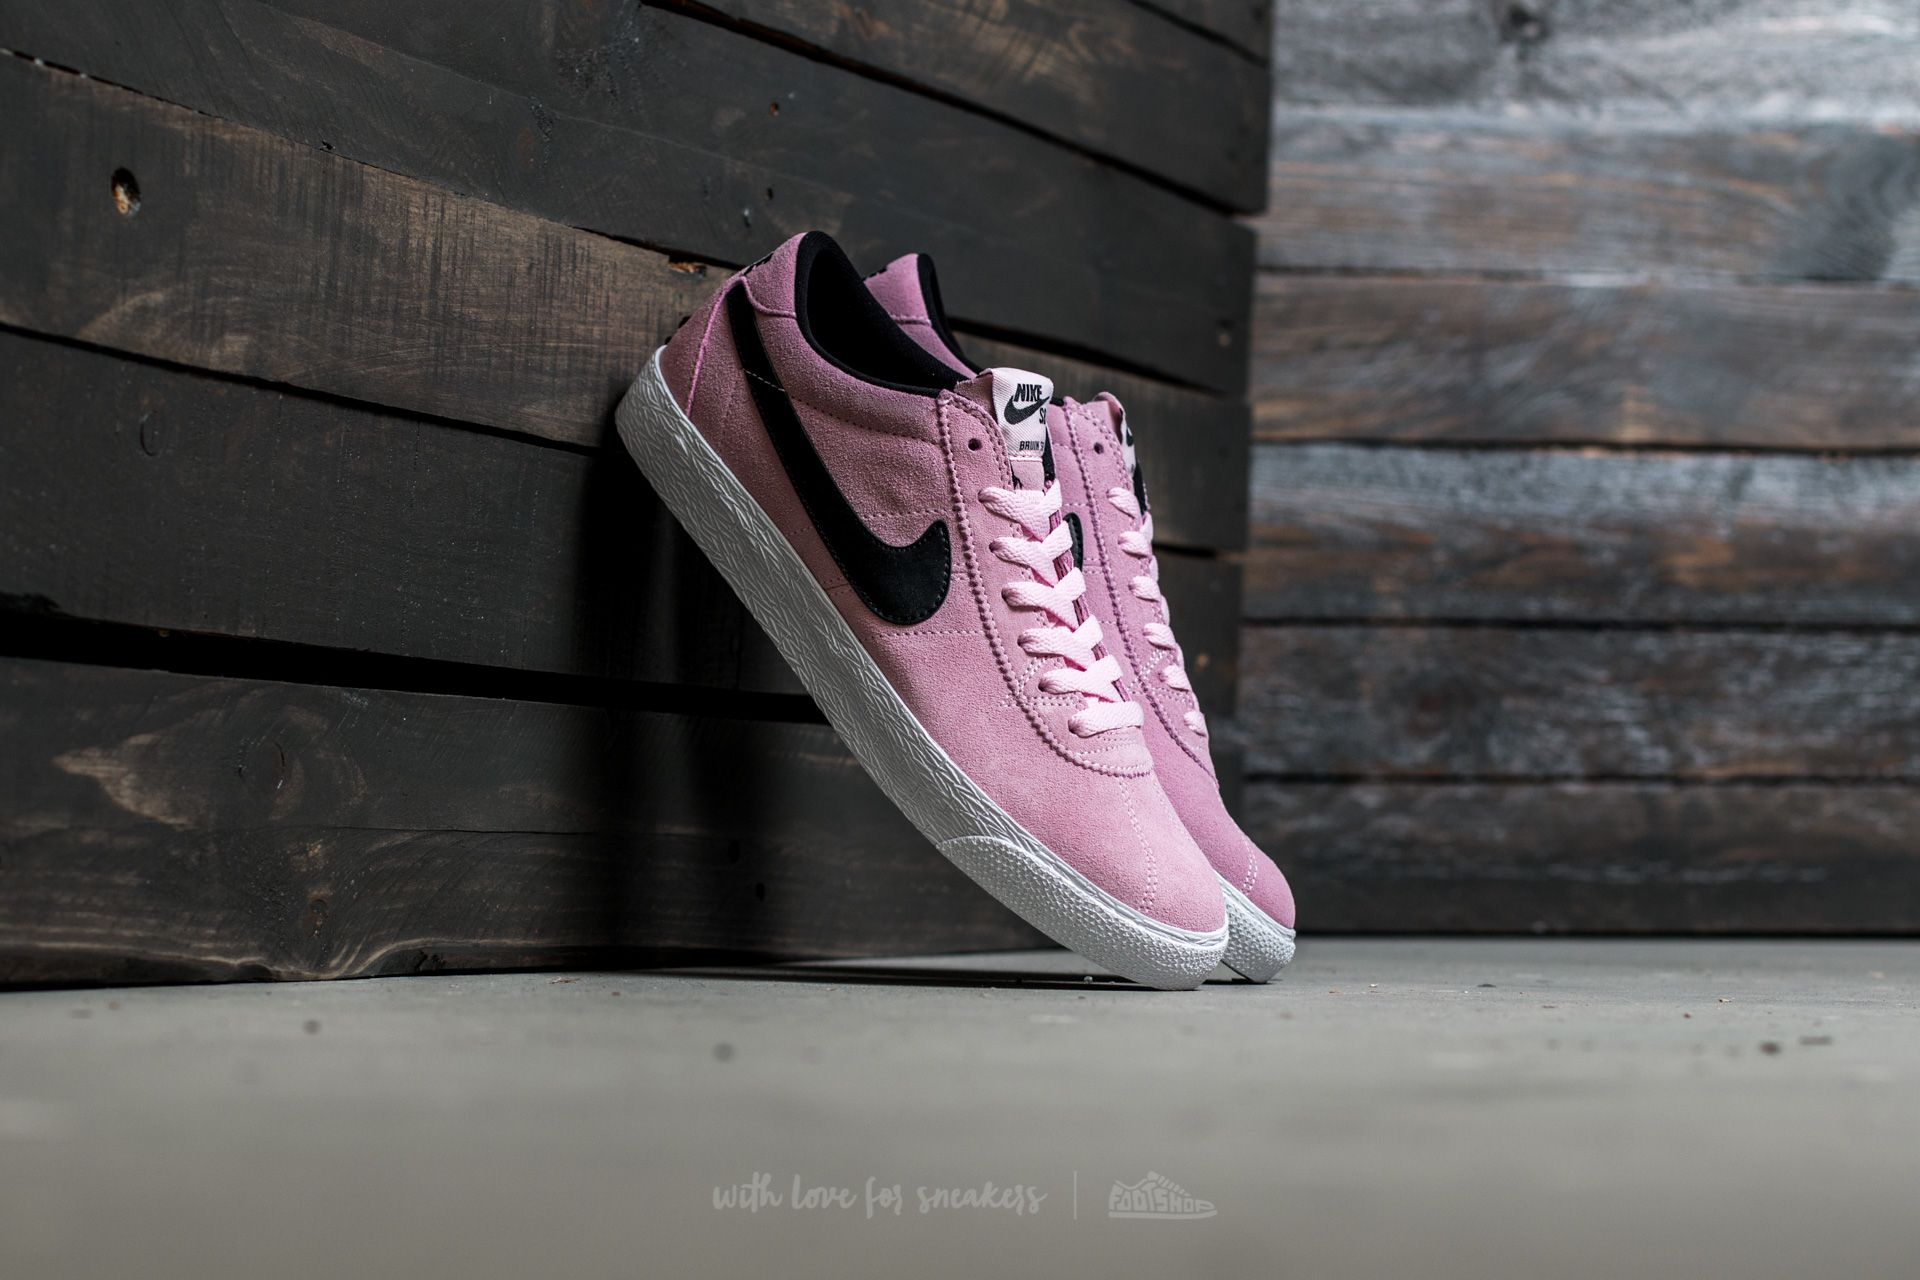 separation shoes 9fe60 c050f Nike SB Bruin Zoom Premium SE. Prism Pink  Black-White